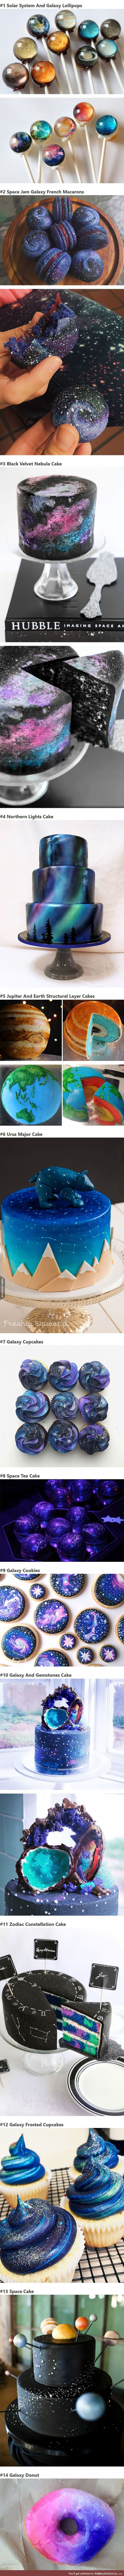 14 Galaxy Inspired Desserts And Sweets That Are Out Of This World